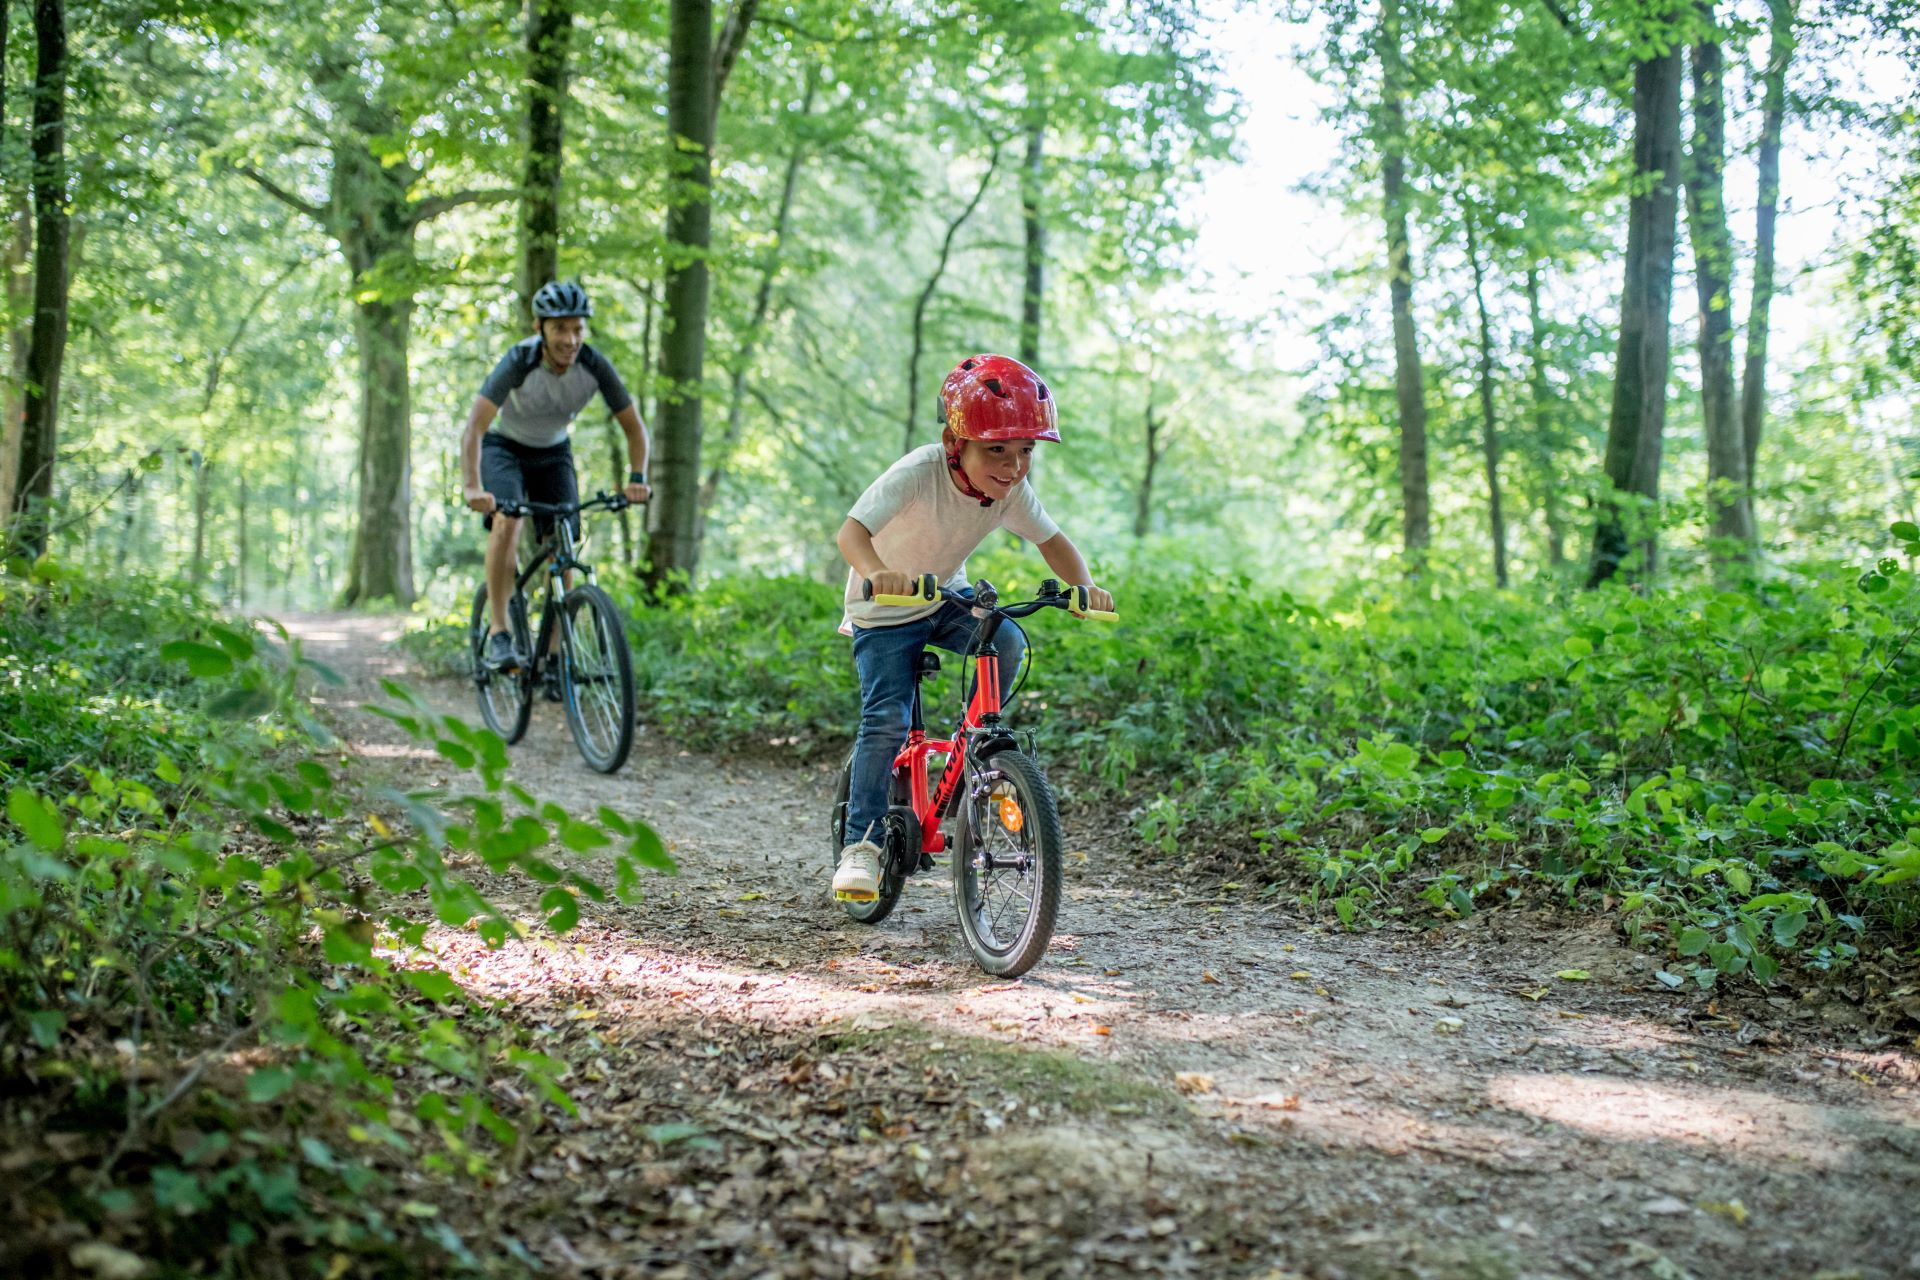 Trail Cycling With Kids - Teaching The Etiquette And Skills Required